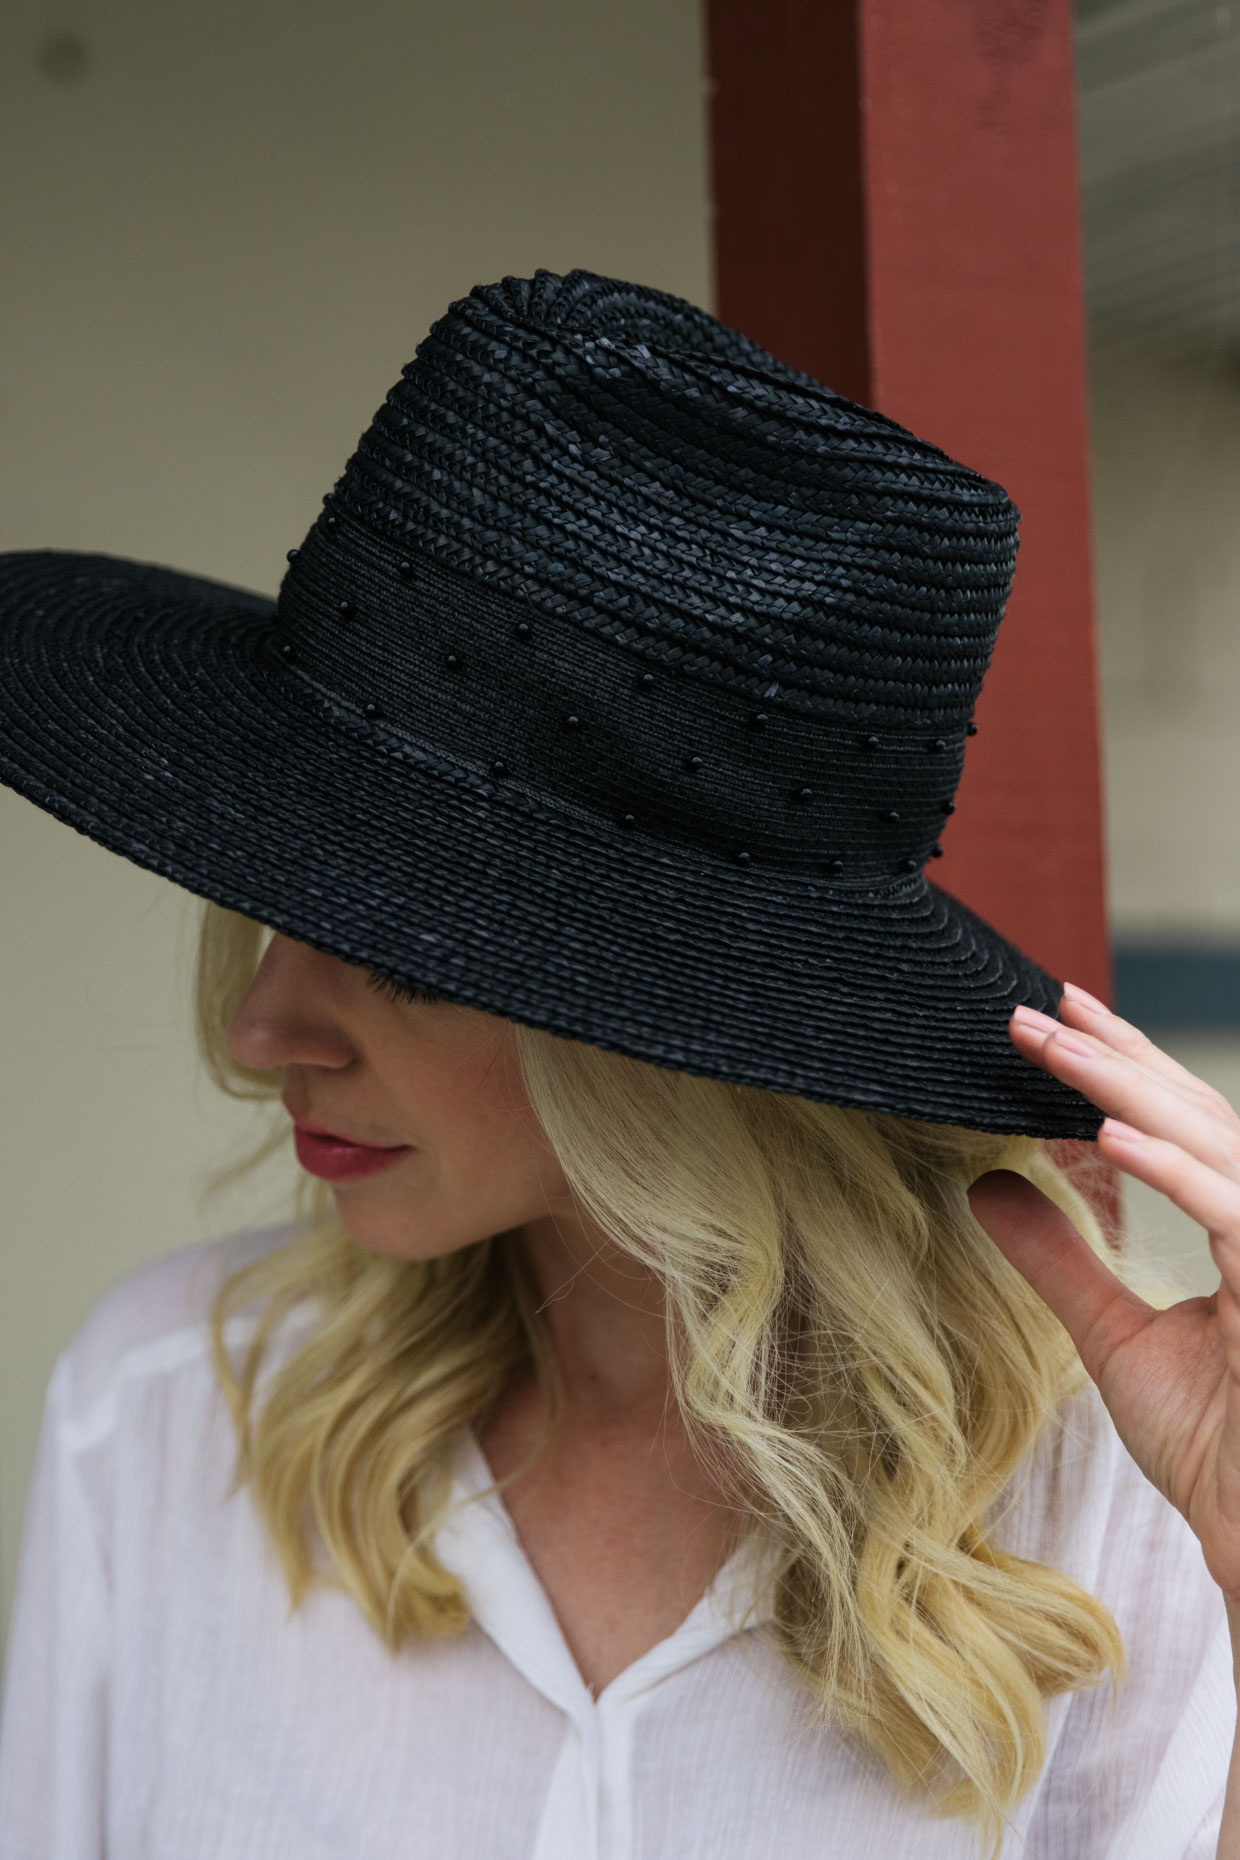 69bfe10a6 Brixton Macy black fedora hat outfit for summer - Meagan's Moda